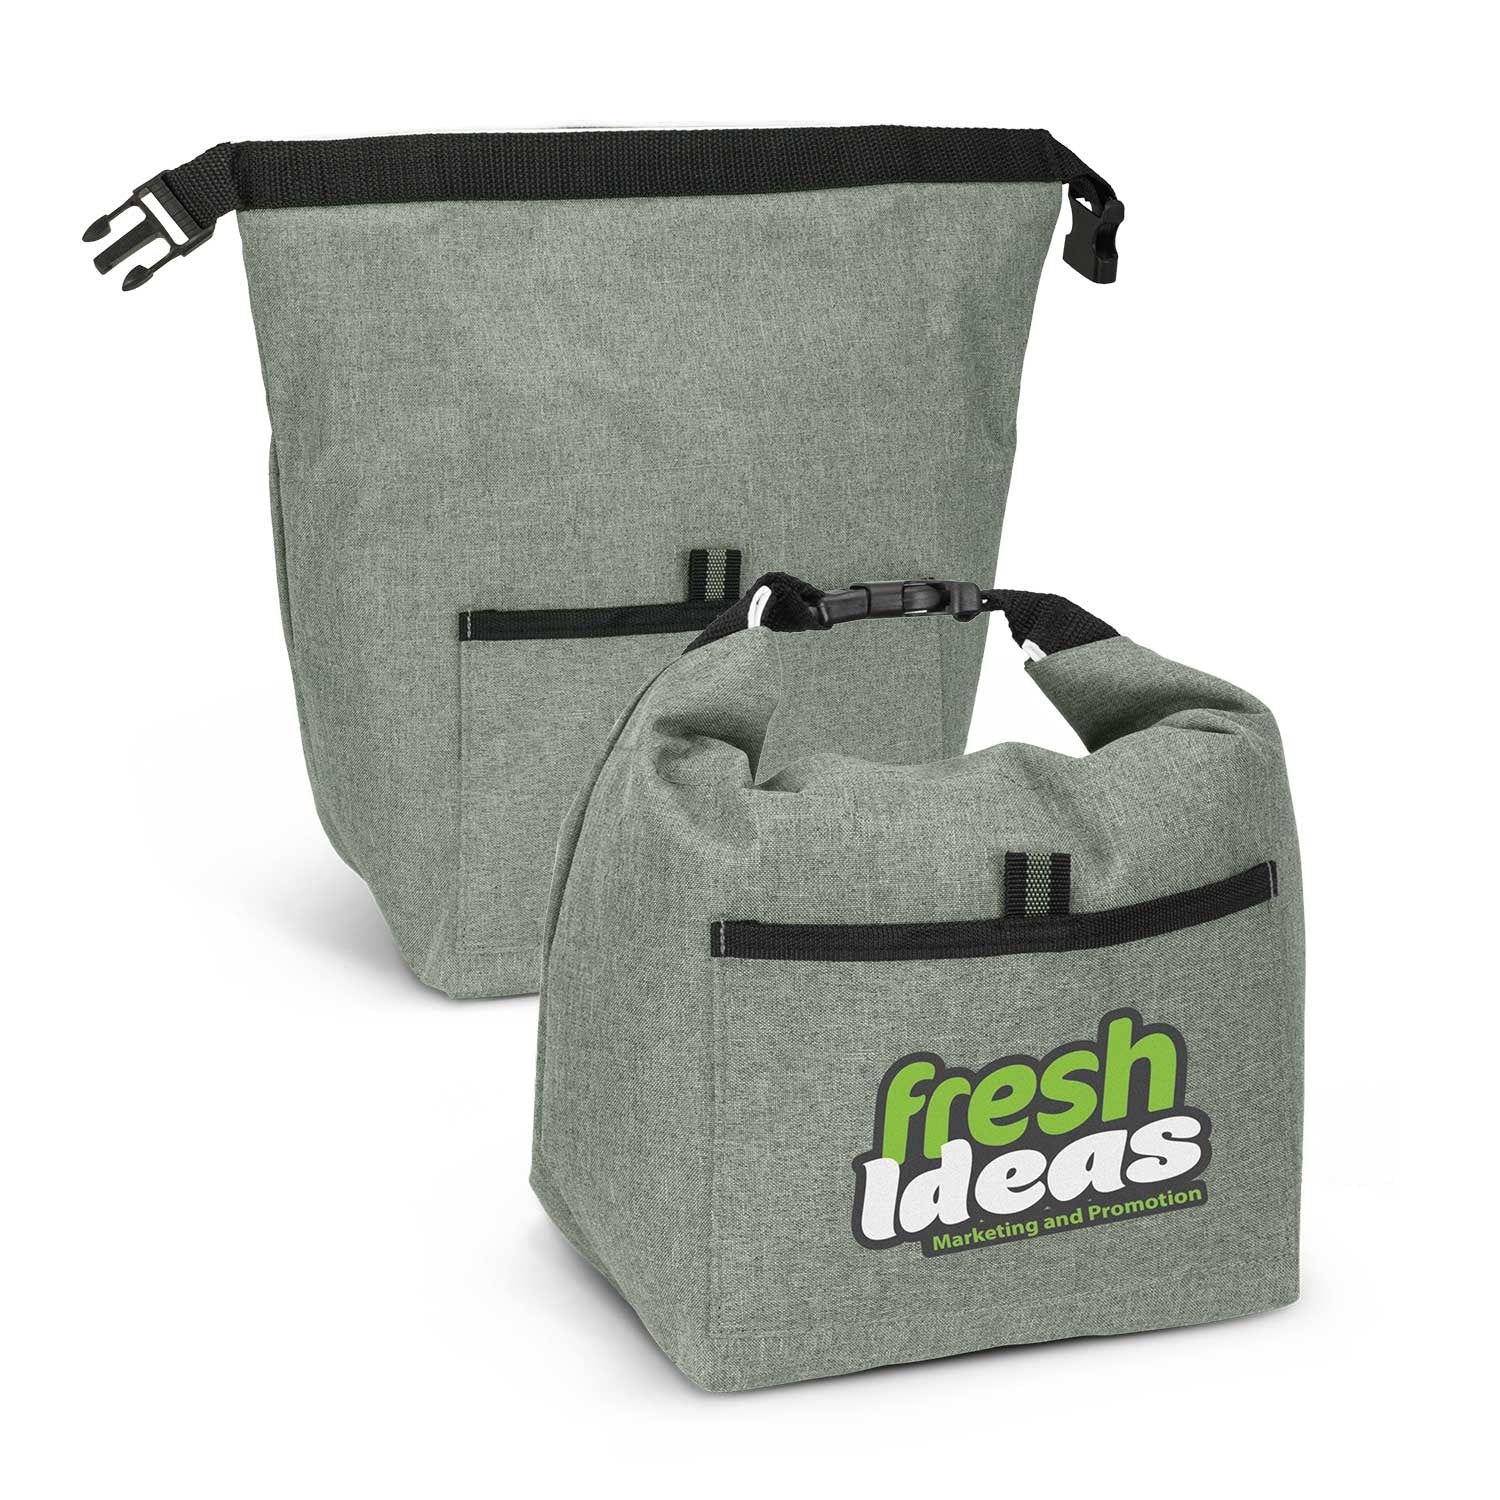 Stock 9 litre Lunch Cooler Bag (SNB-72T) - greenpac.com.au